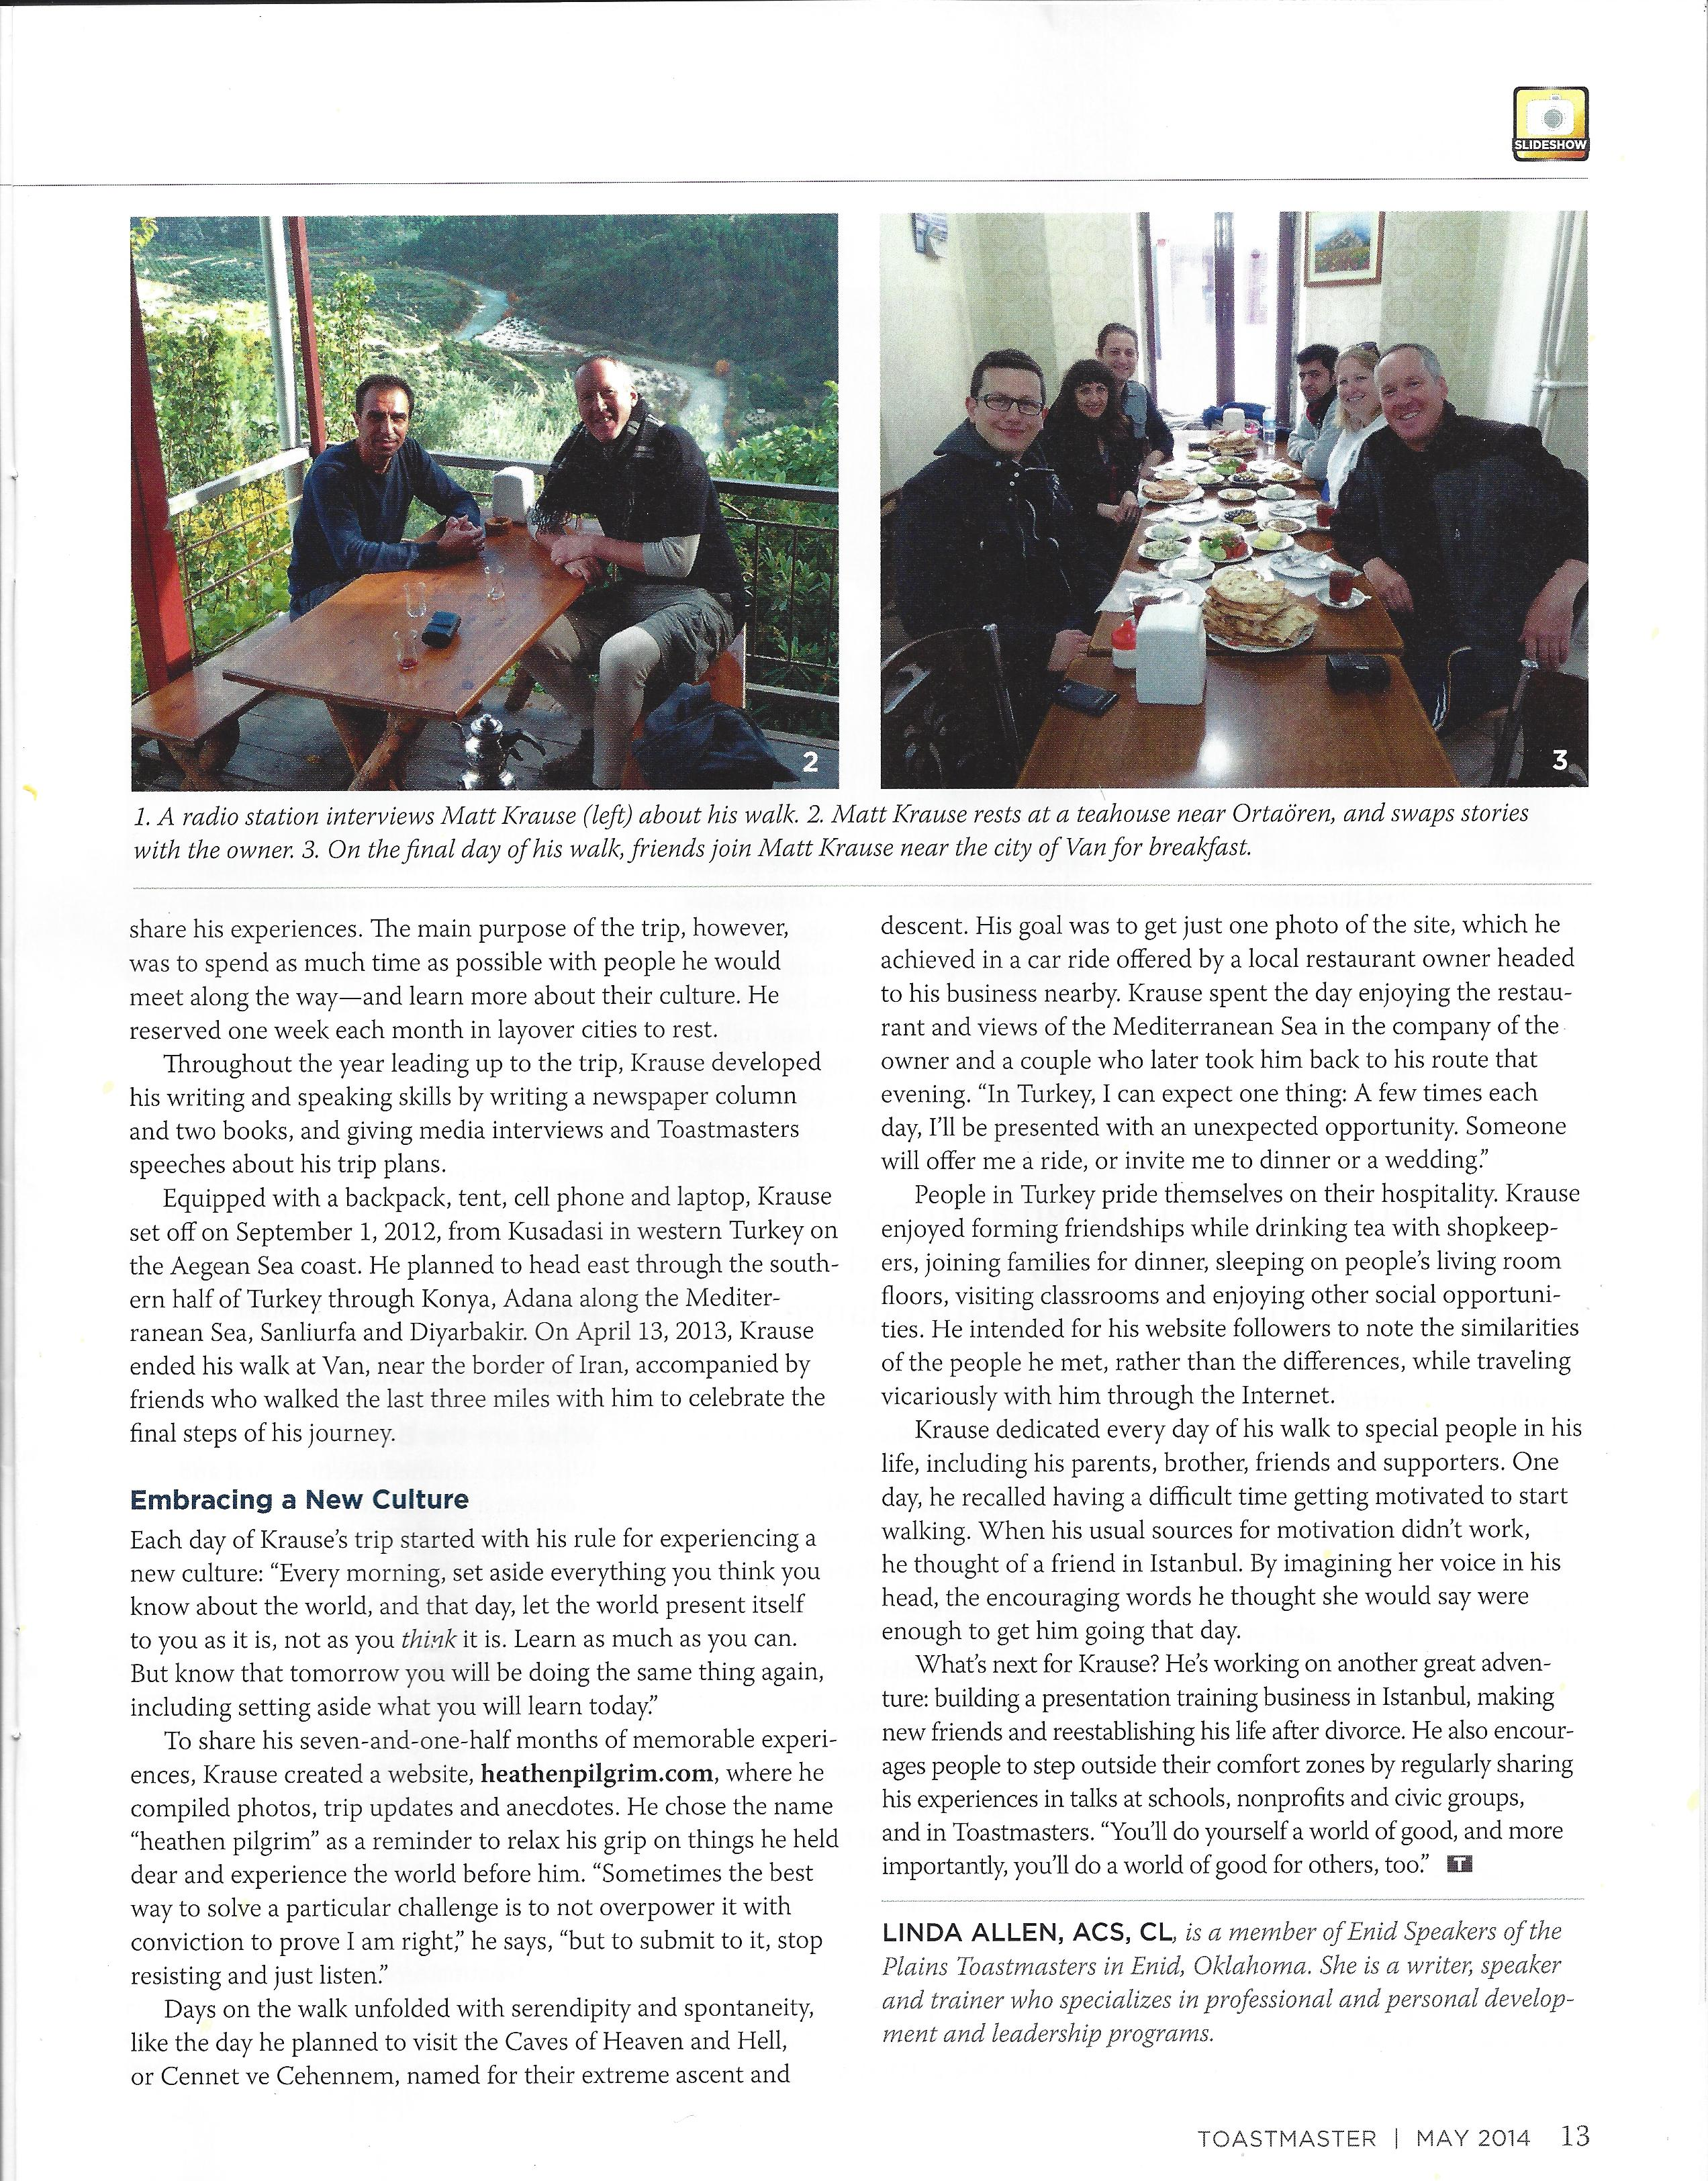 Toastmaster magazine, May 2014 issue, page 2 of 2